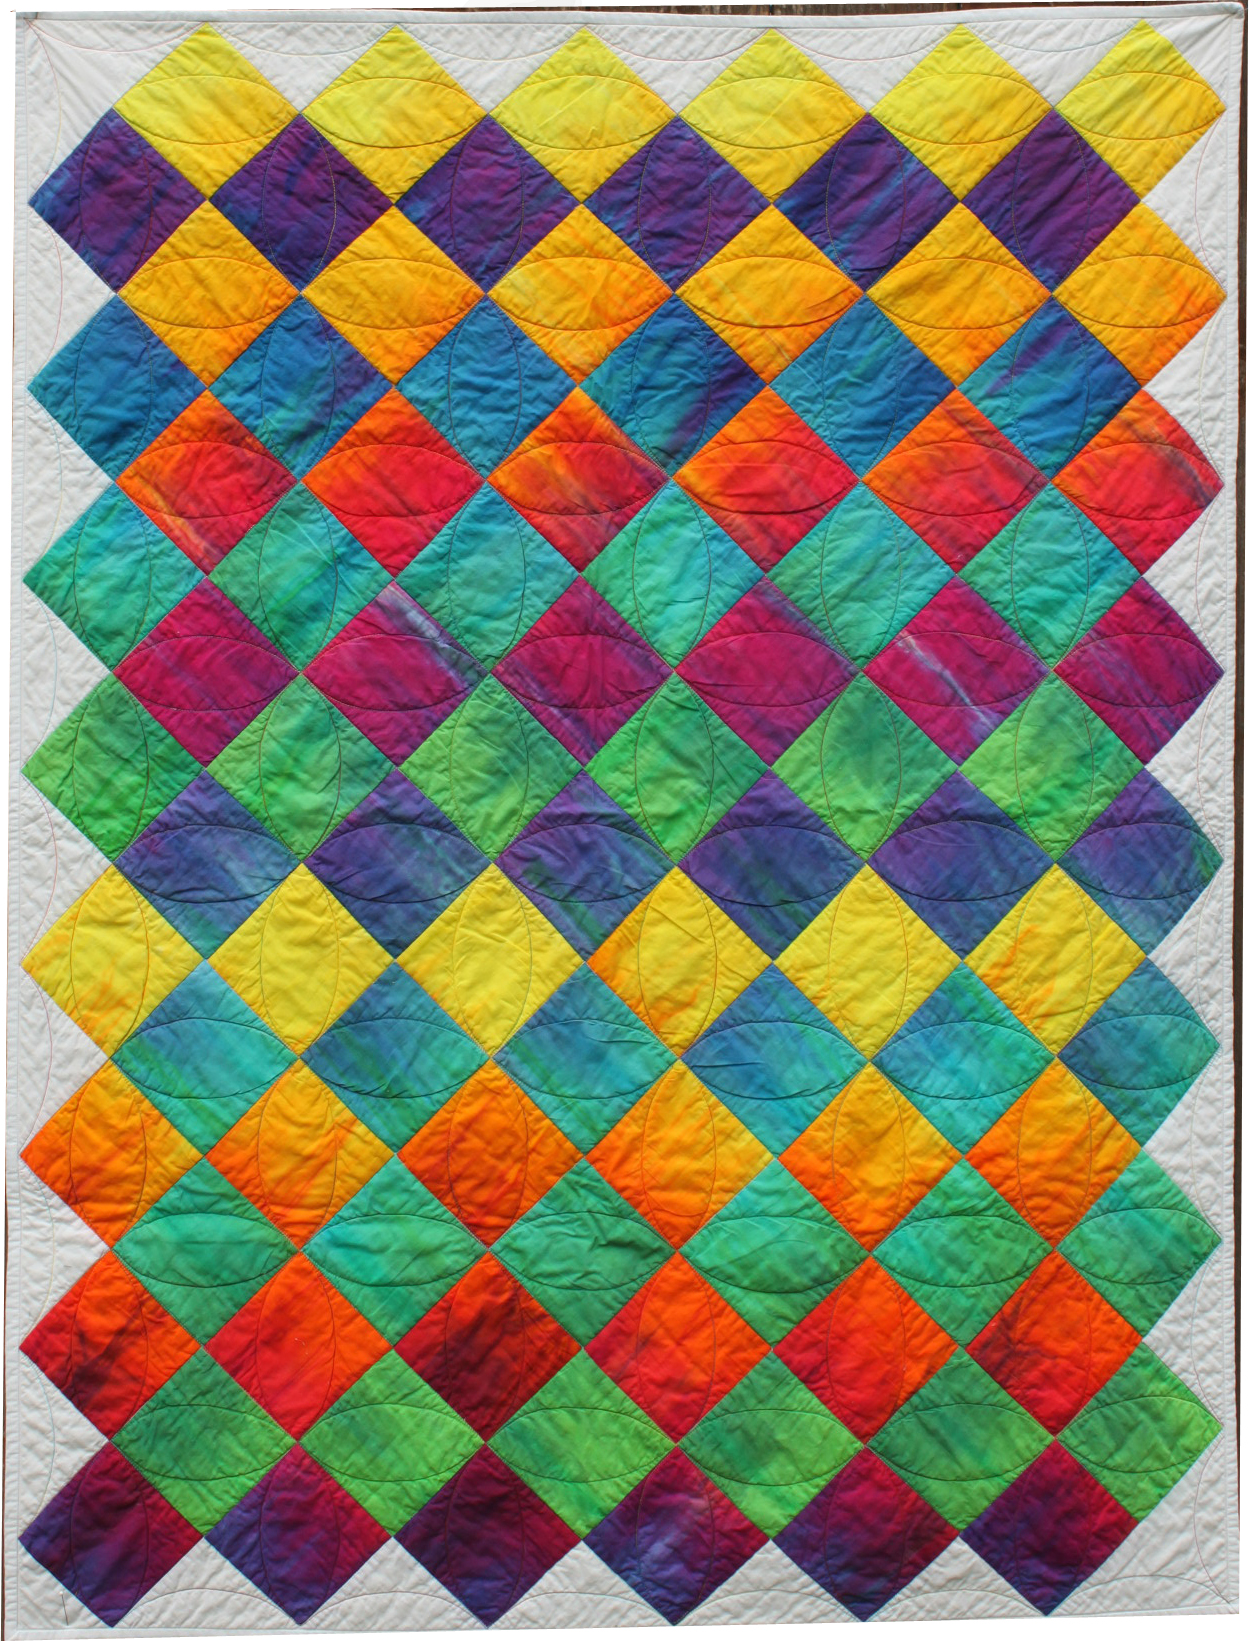 Quilting Arts Tv Series Frieda Anderson